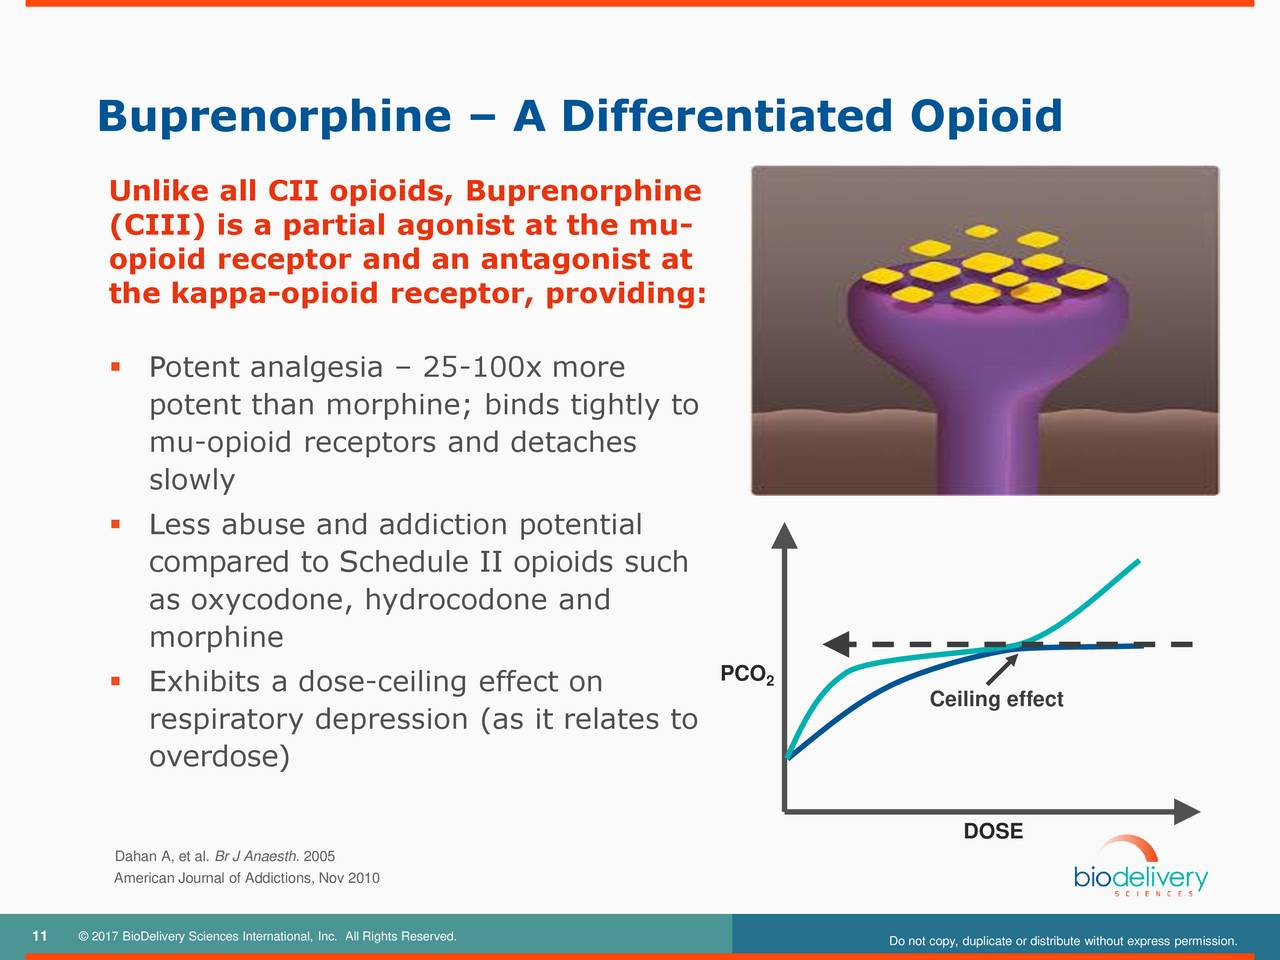 kappa agonists in management of pain and opioid addiction Researchers have developed an opioid compound that targets specific pain receptors a new opioid drug could provide pain relief and the kappa opioid.